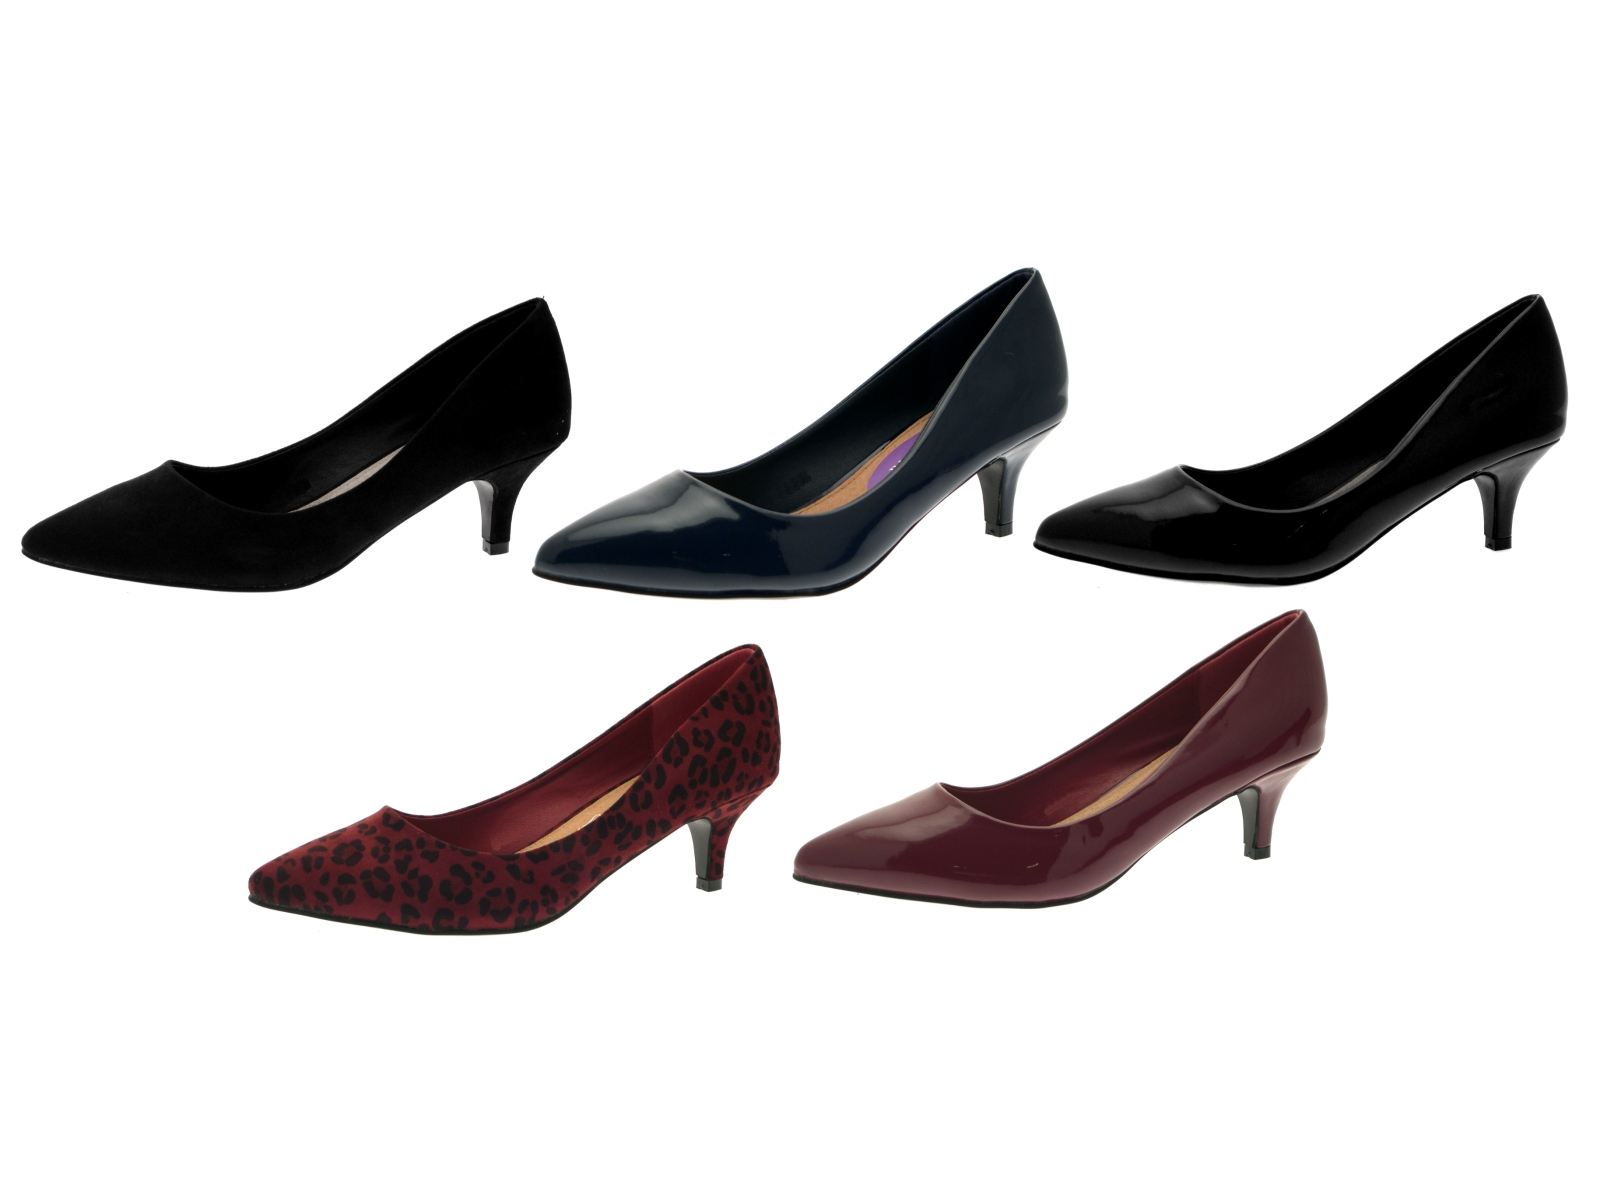 61483918ff Womens Pointed Toe Court Stiletto Kitten Heels Faux Leather Suede ...